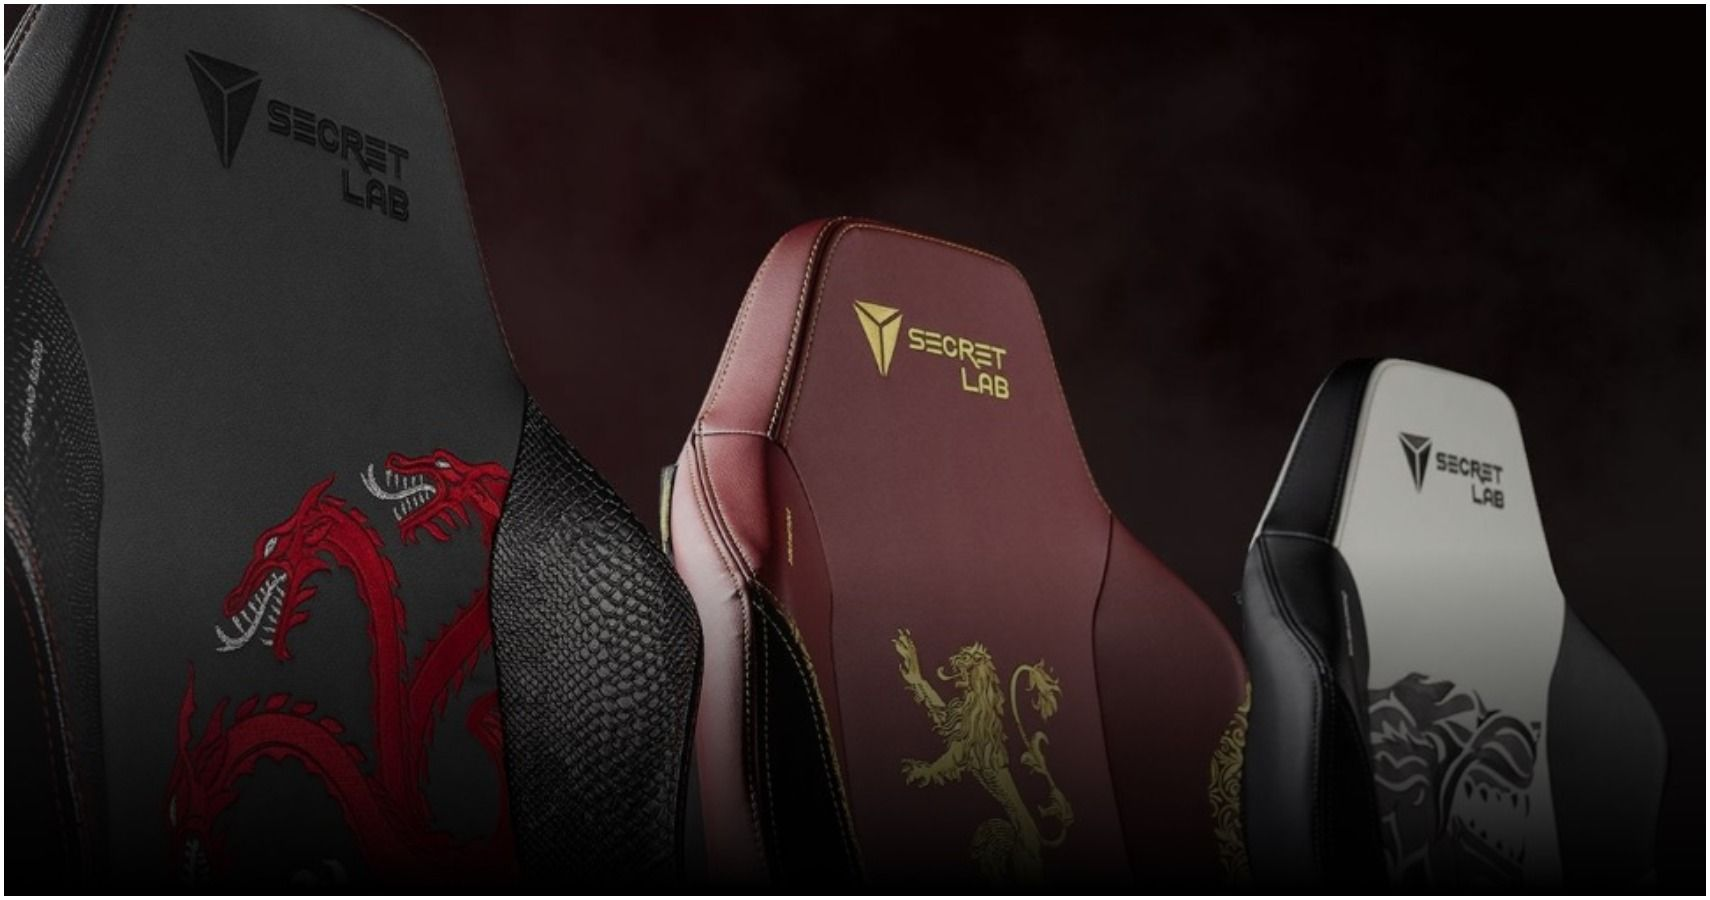 Game Of Thrones Gaming Chairs Show House Spirit Thegamer